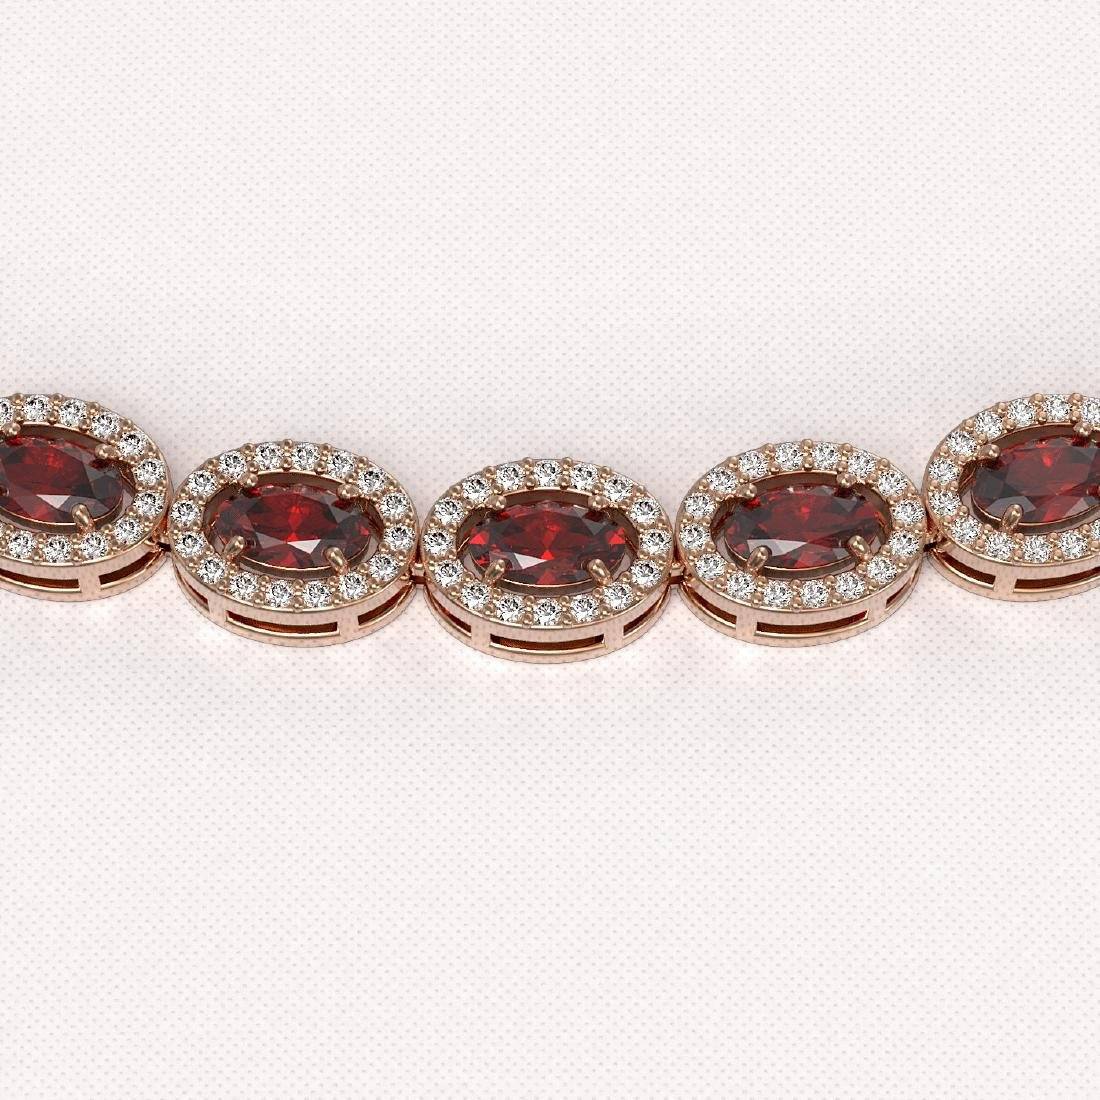 21.04 CTW Garnet & Diamond Halo Necklace 10K Rose Gold - 3